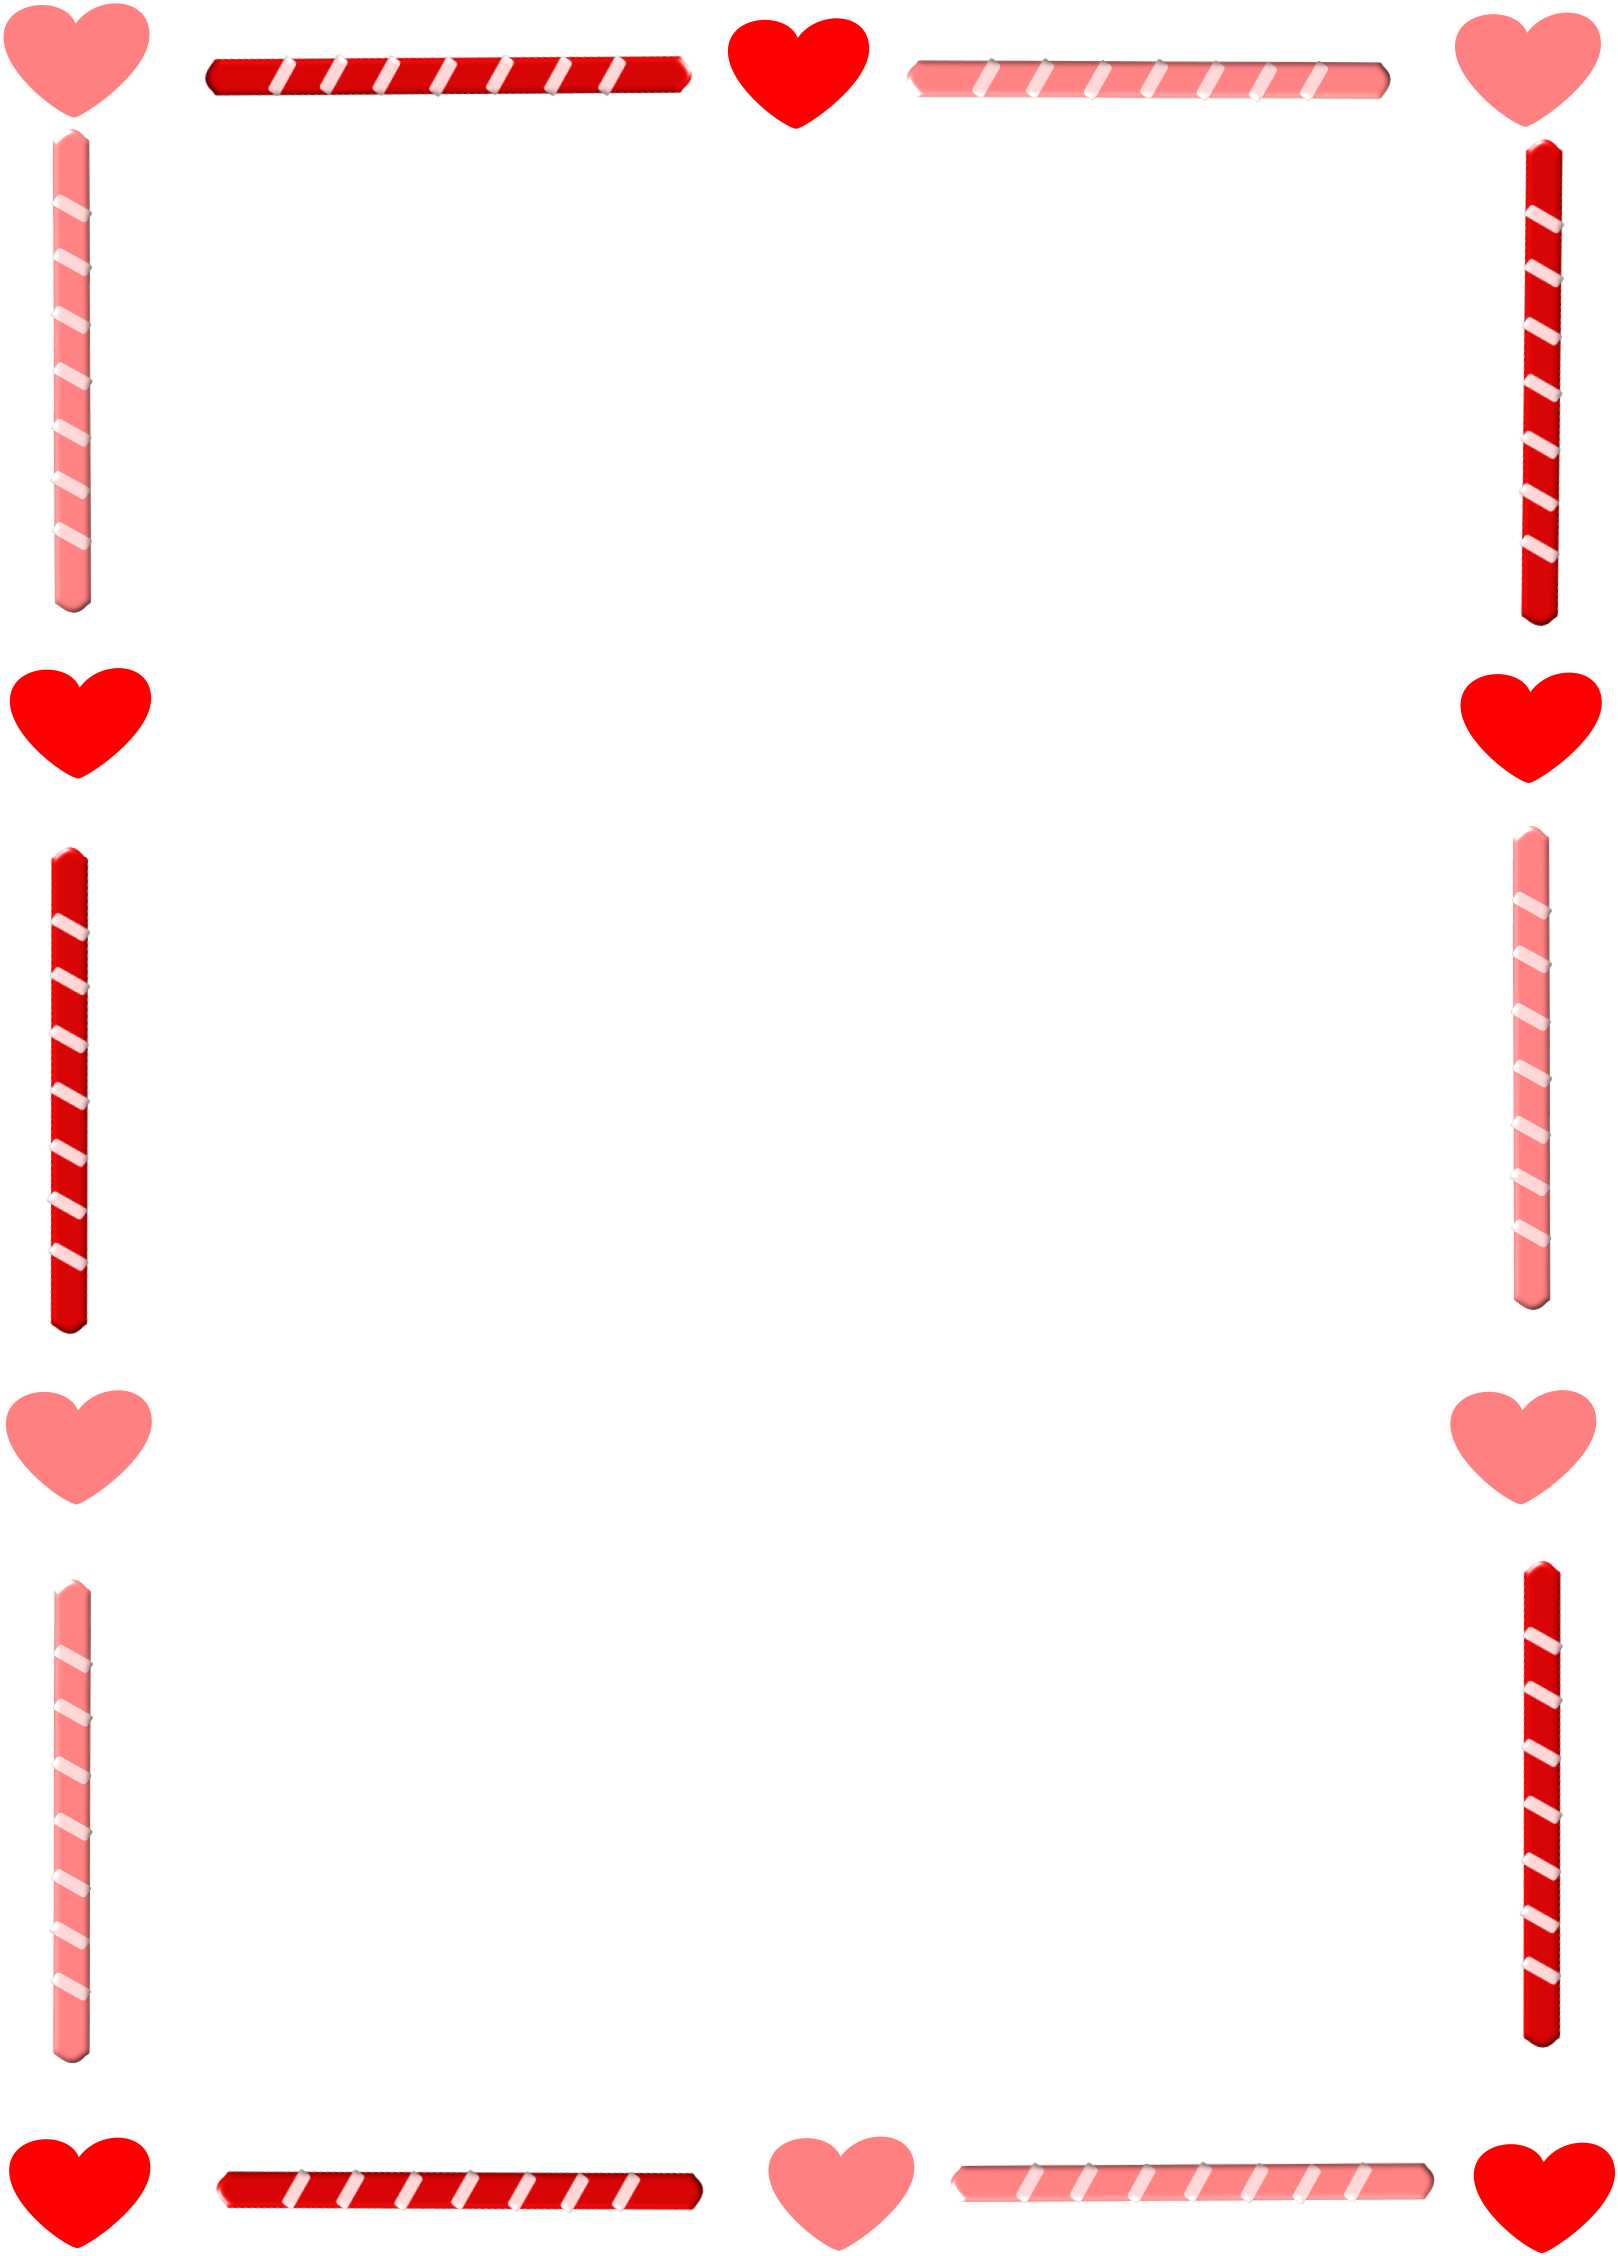 Heart Border Clipart Heart And Candy Border.